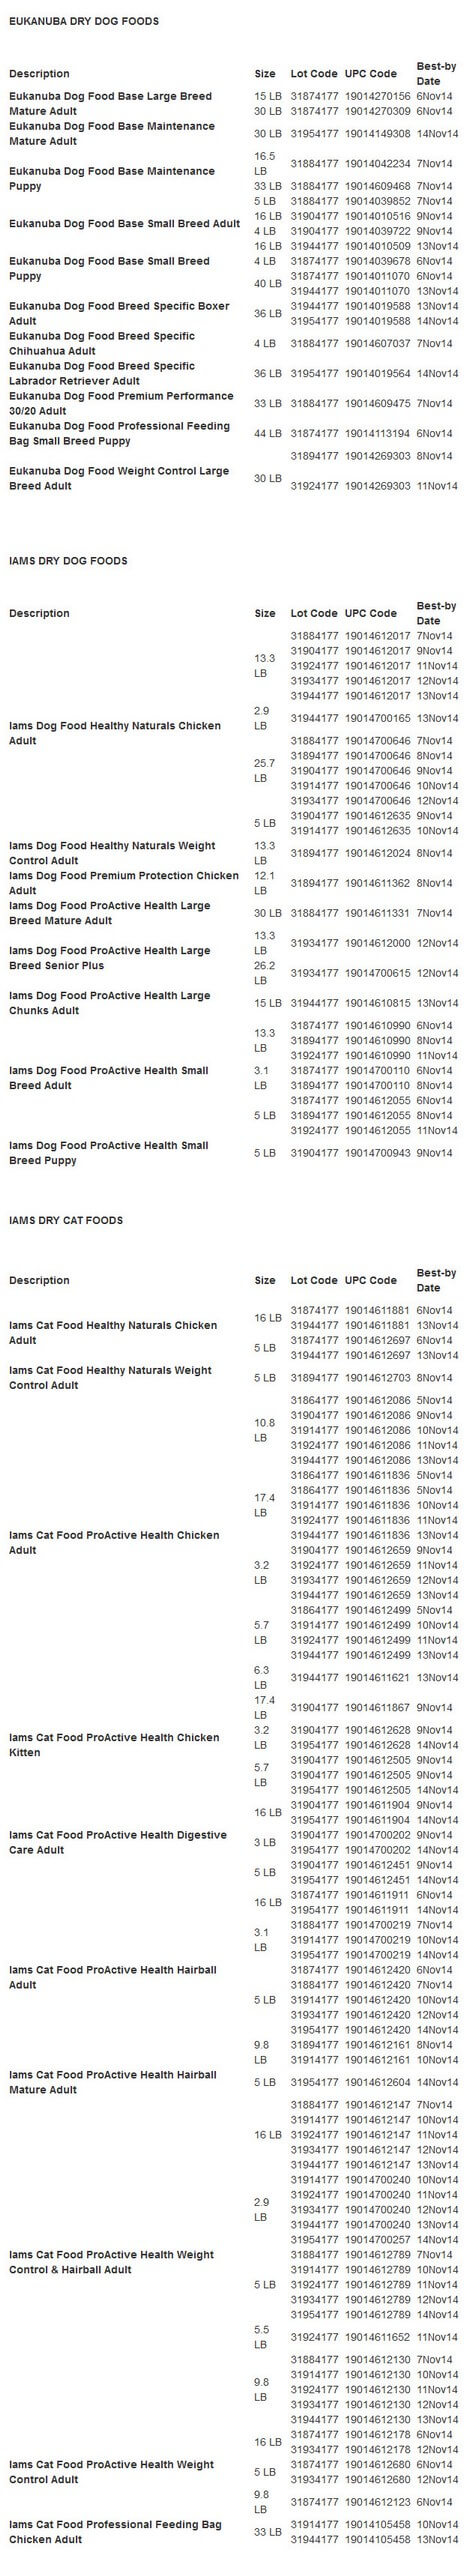 Iams Eukanuba Recall Lot Numbers